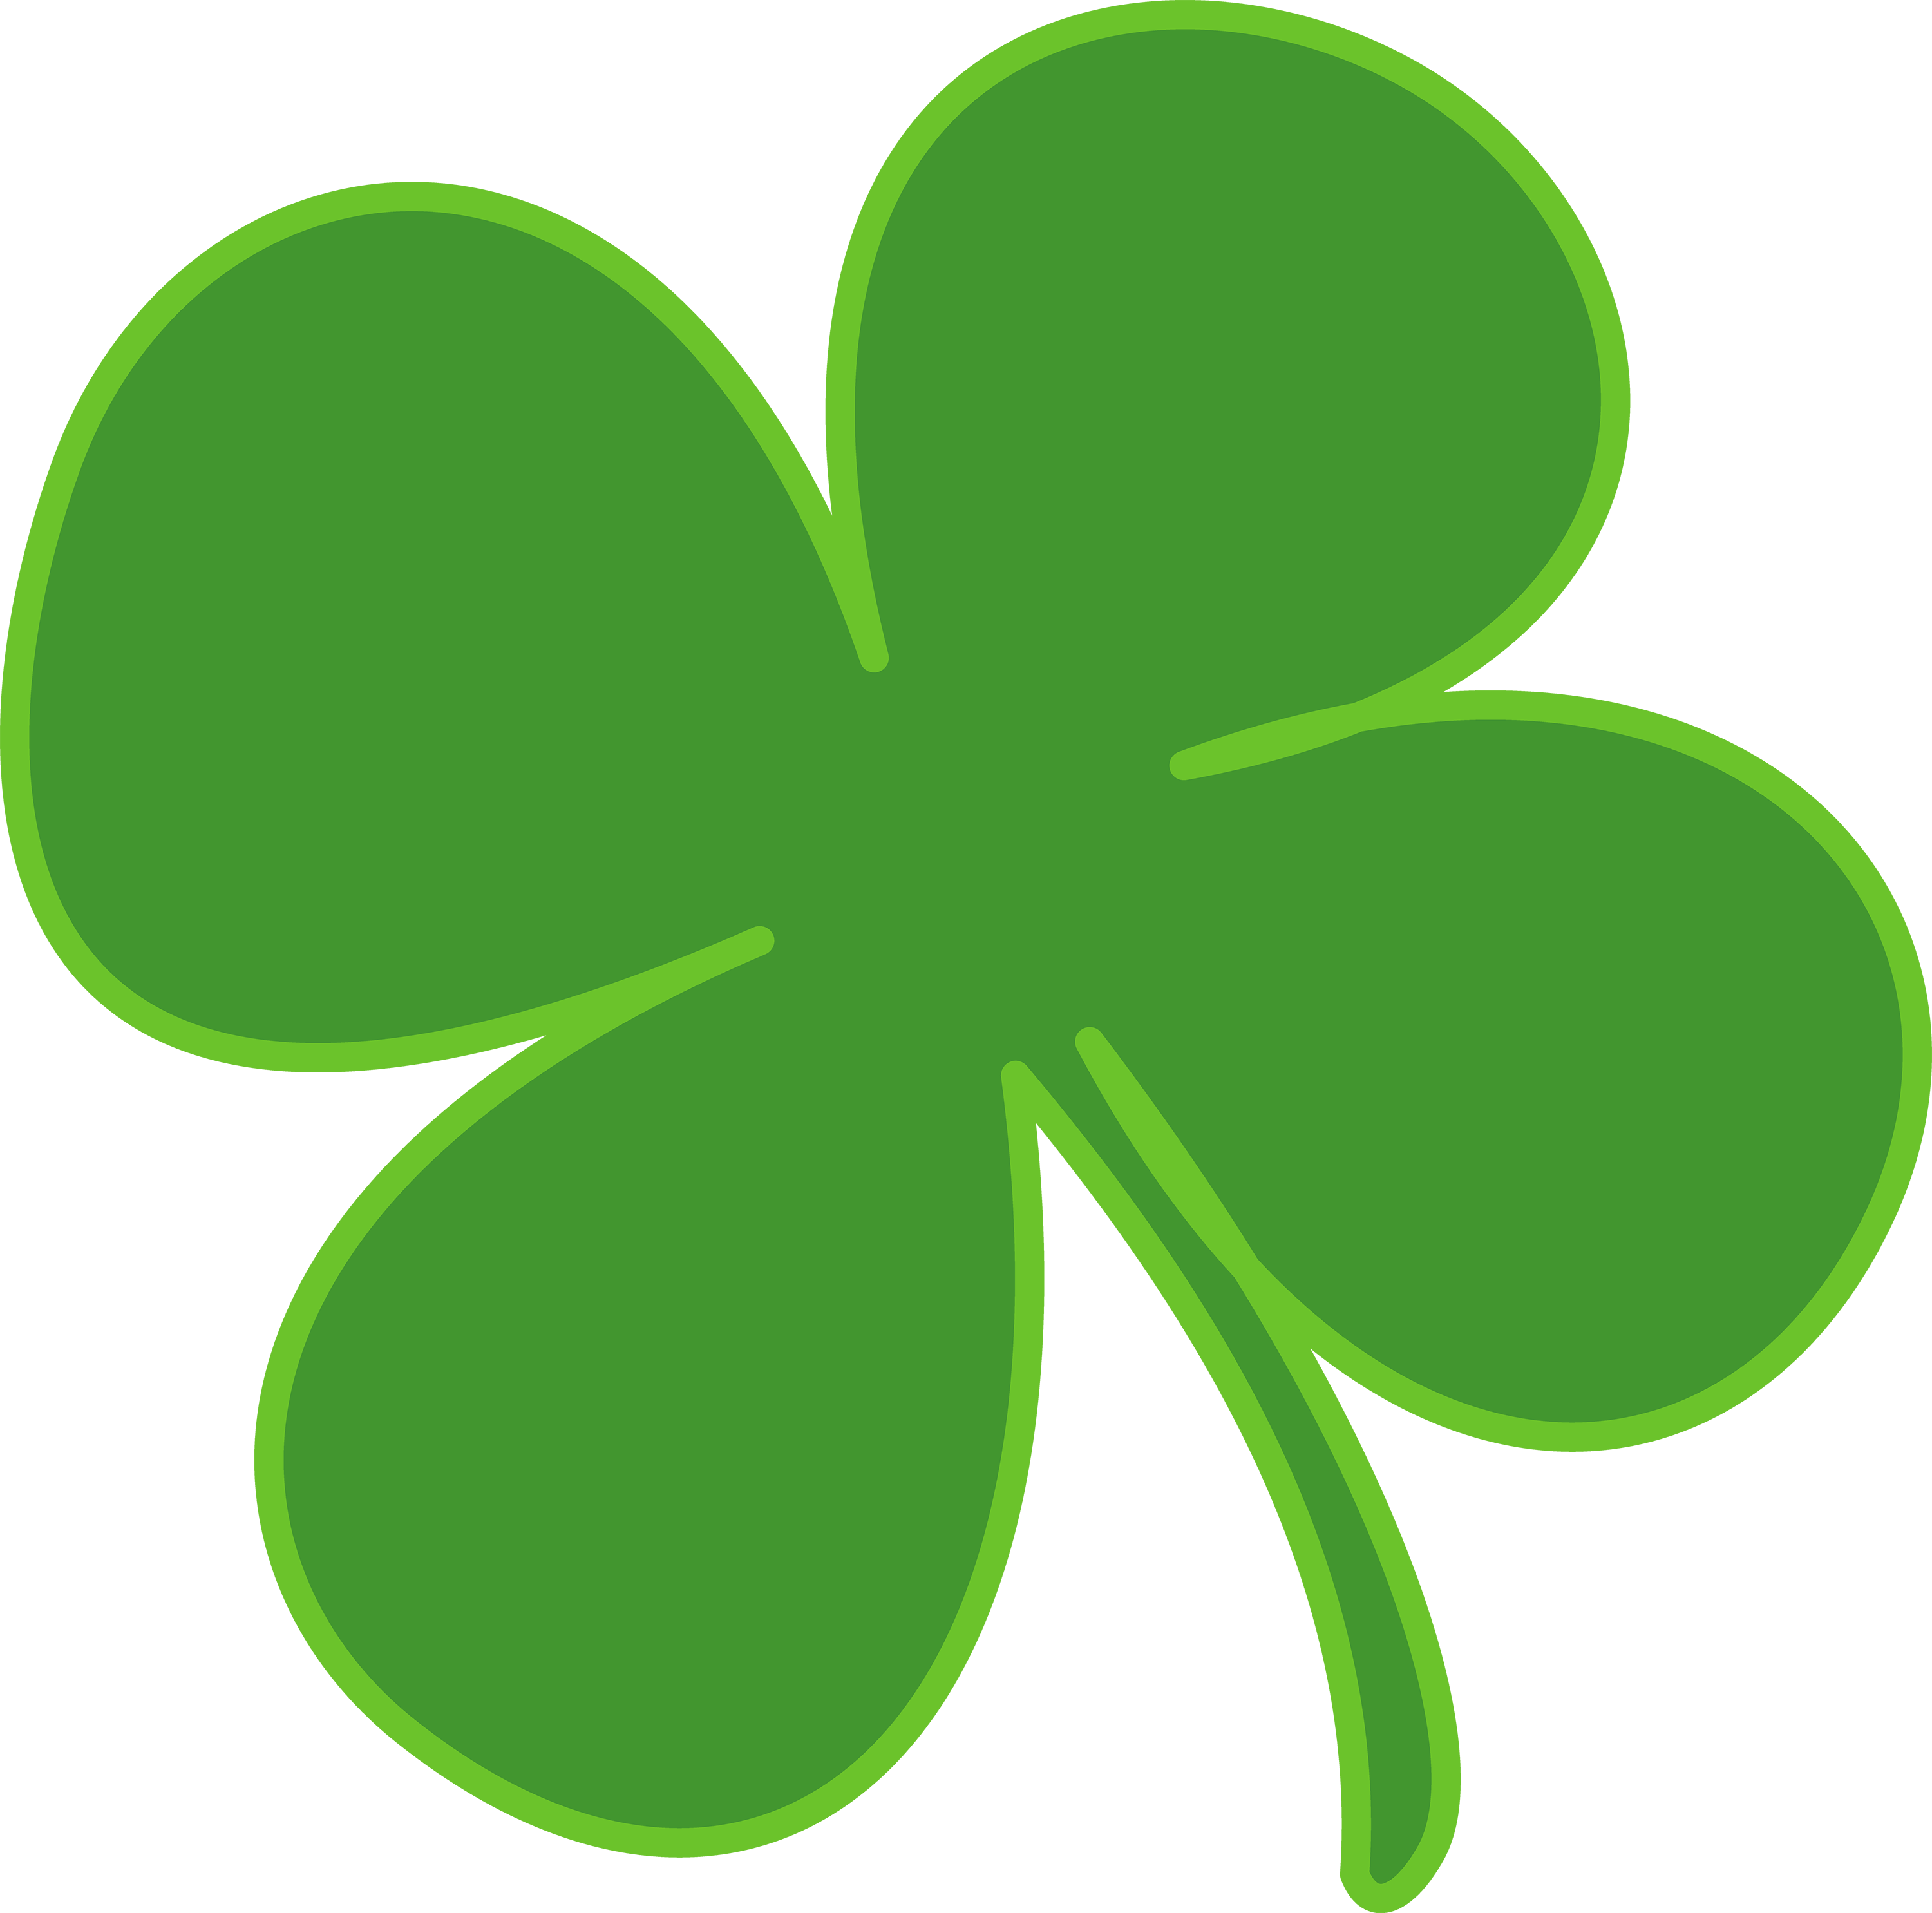 Green Day clipart shamrock Image Paintings clipart Shamrock Shamrock